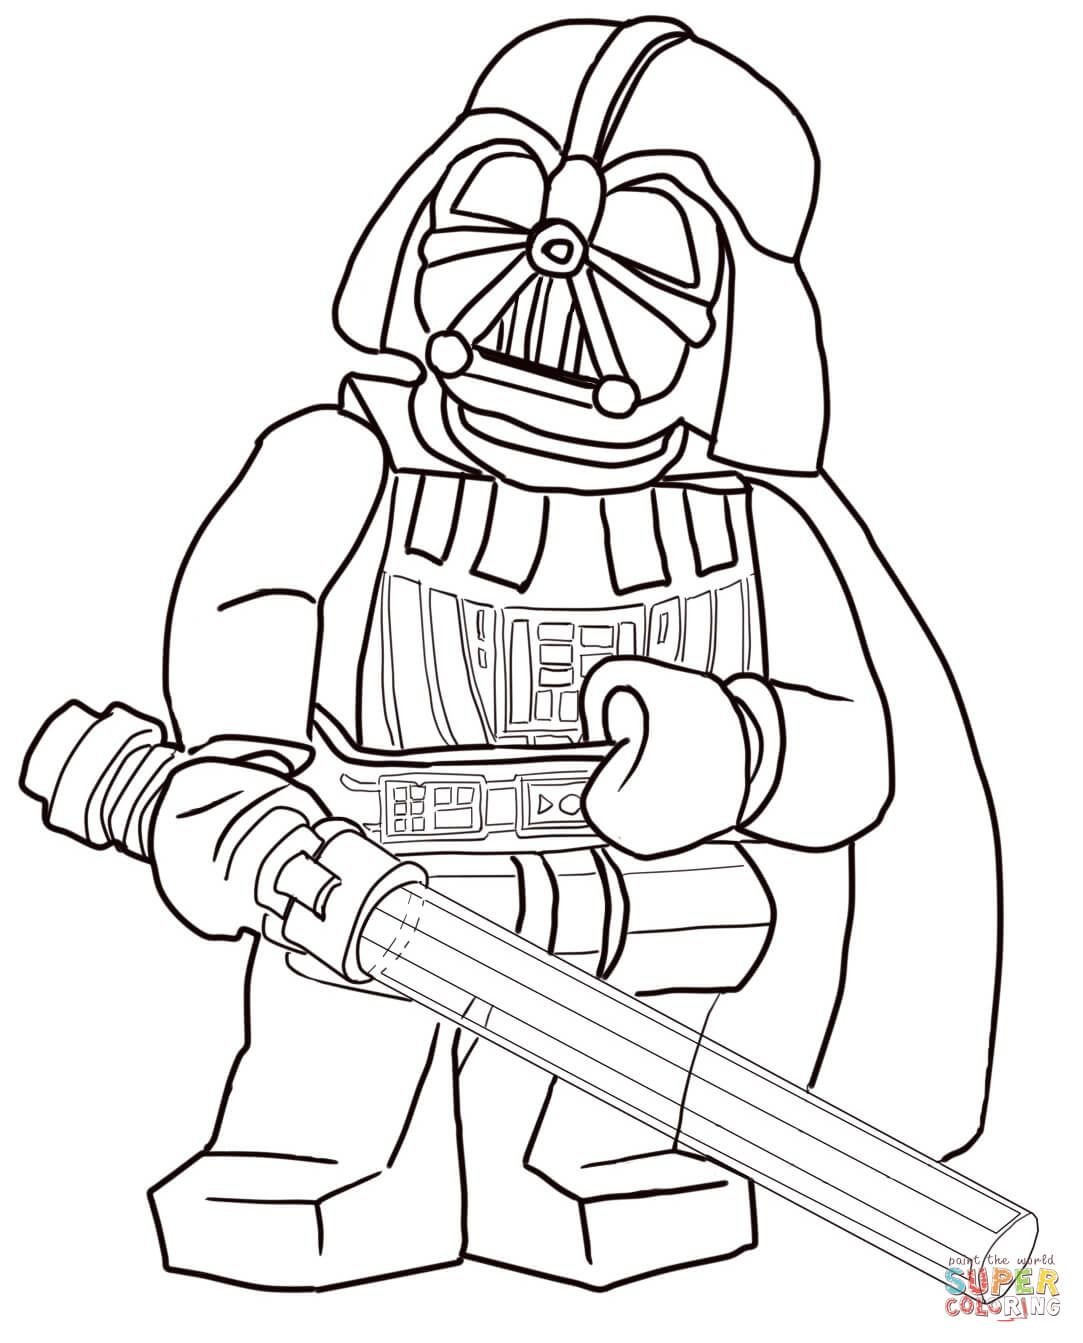 Lego Star Wars Darth Vader Super Coloring Coloriage